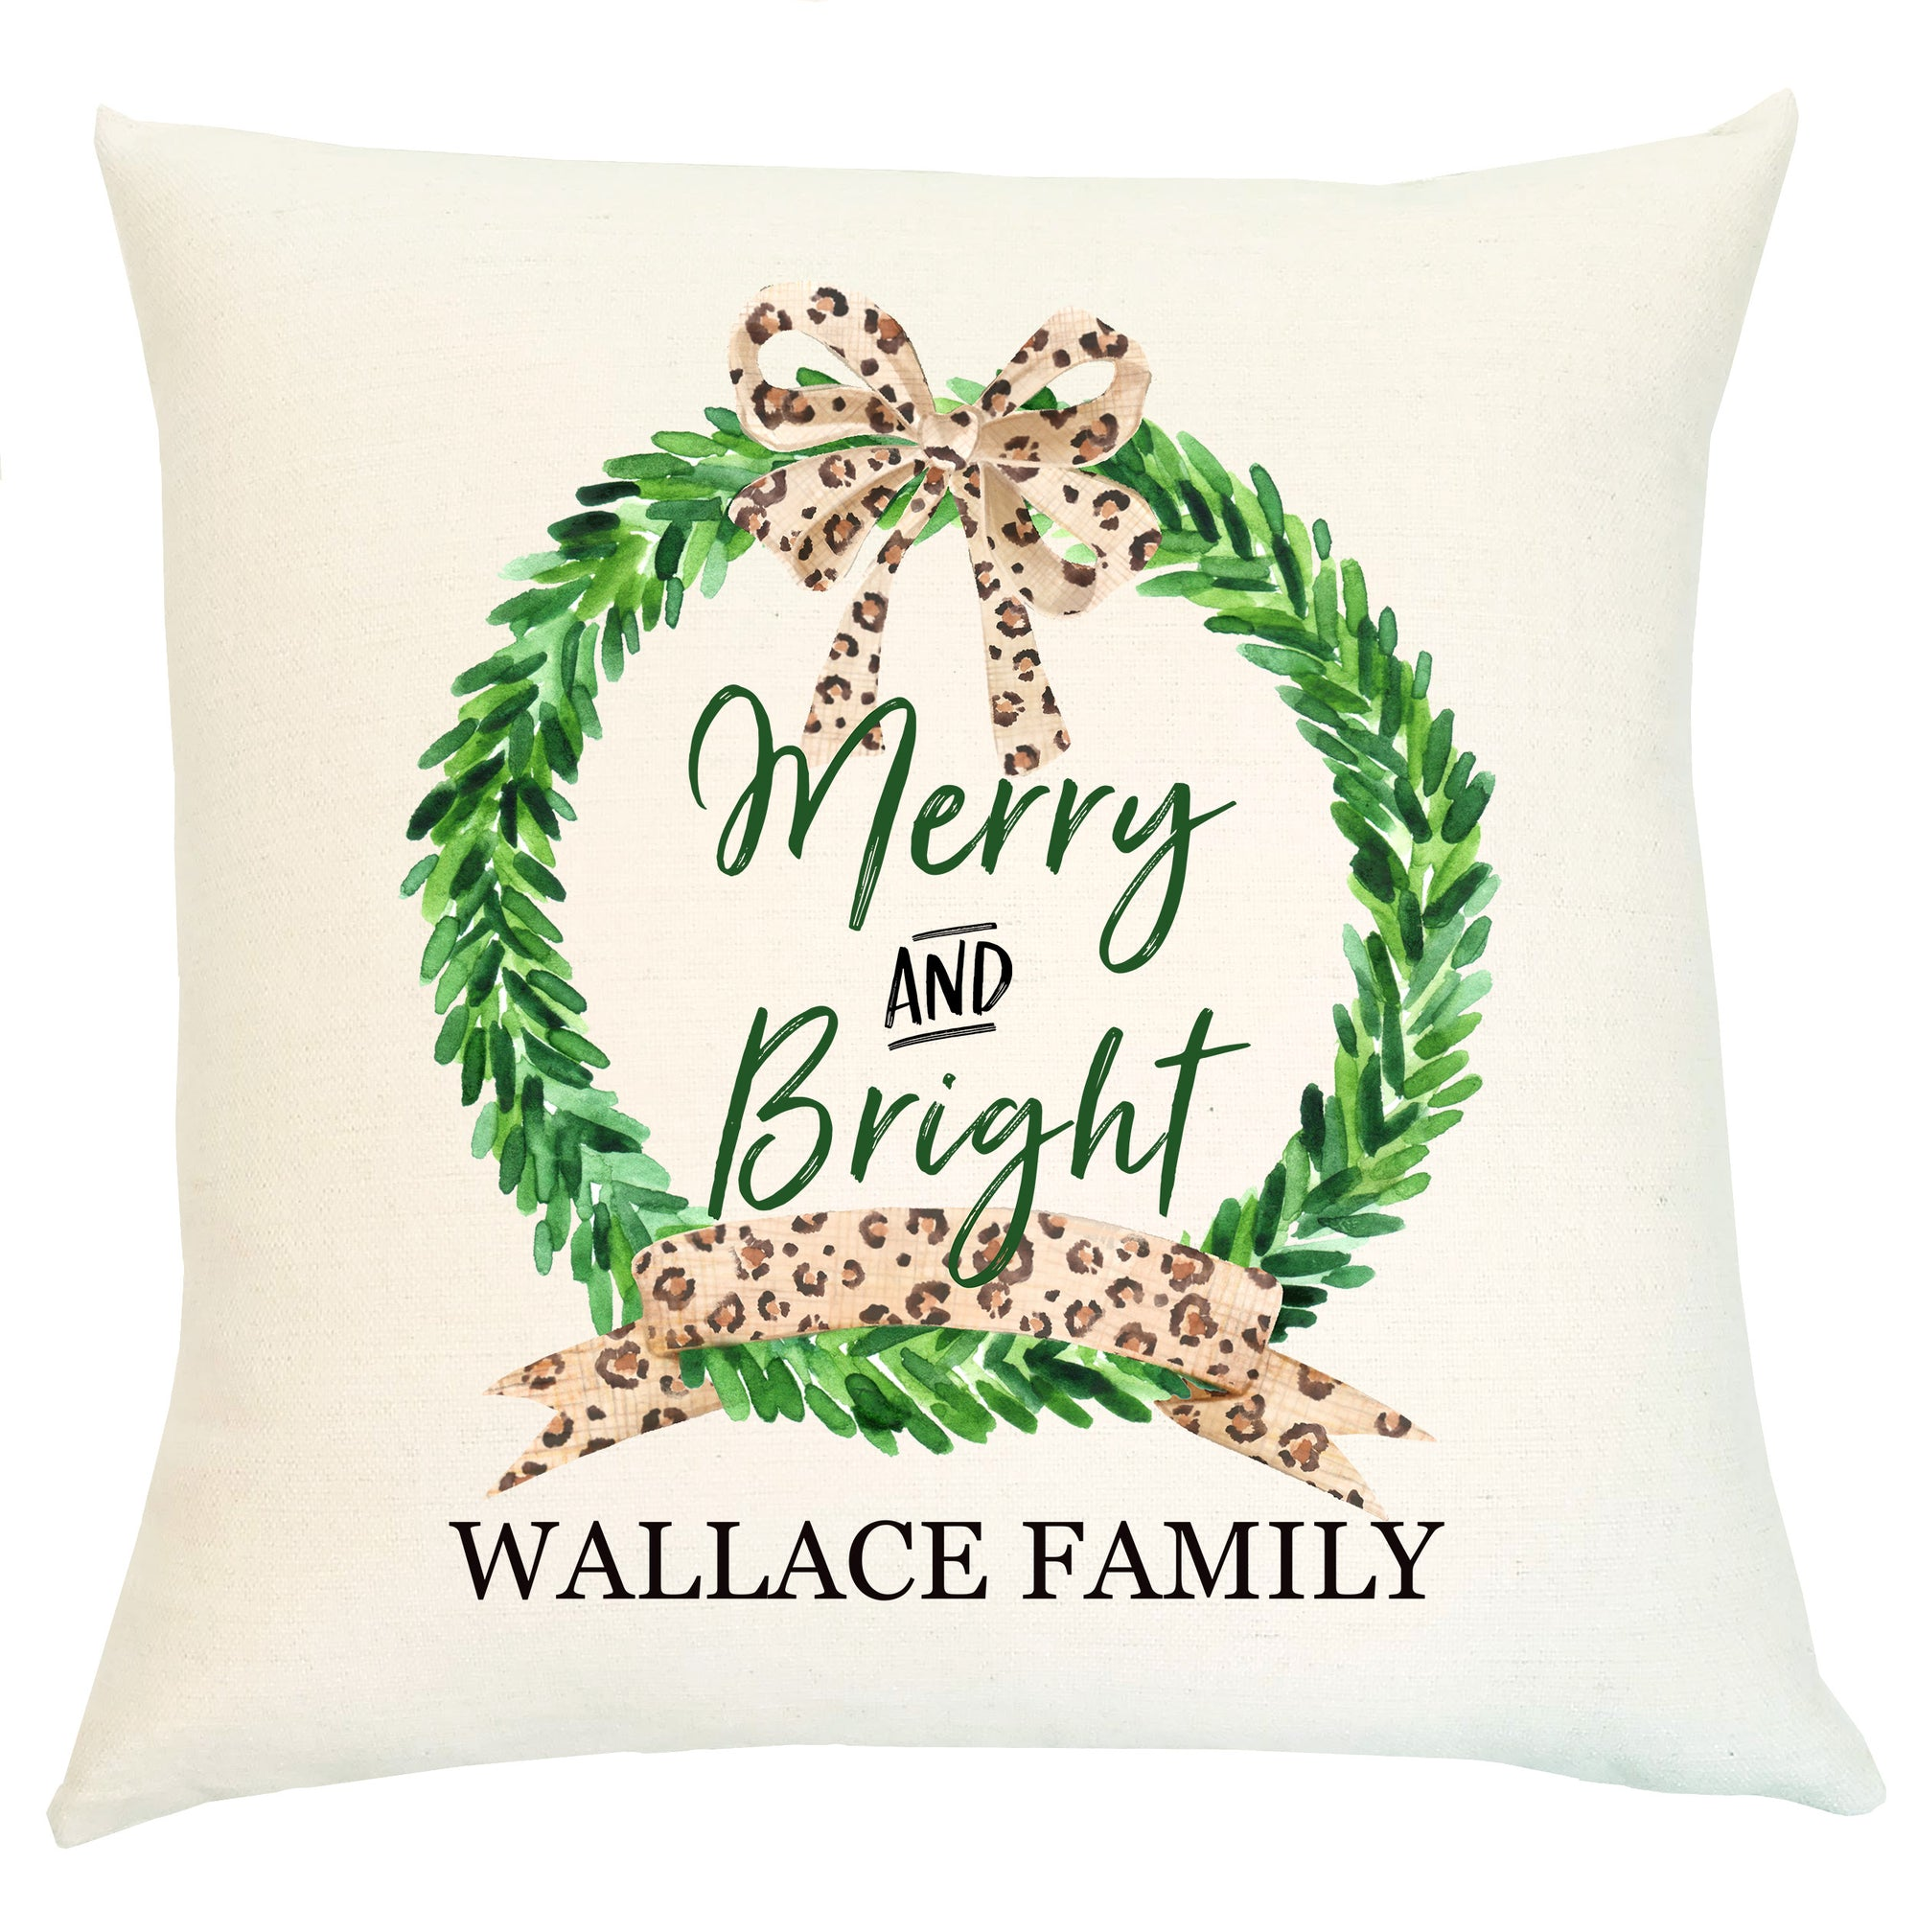 Pillow Personalized - Wreath Leopard Merry and Bright